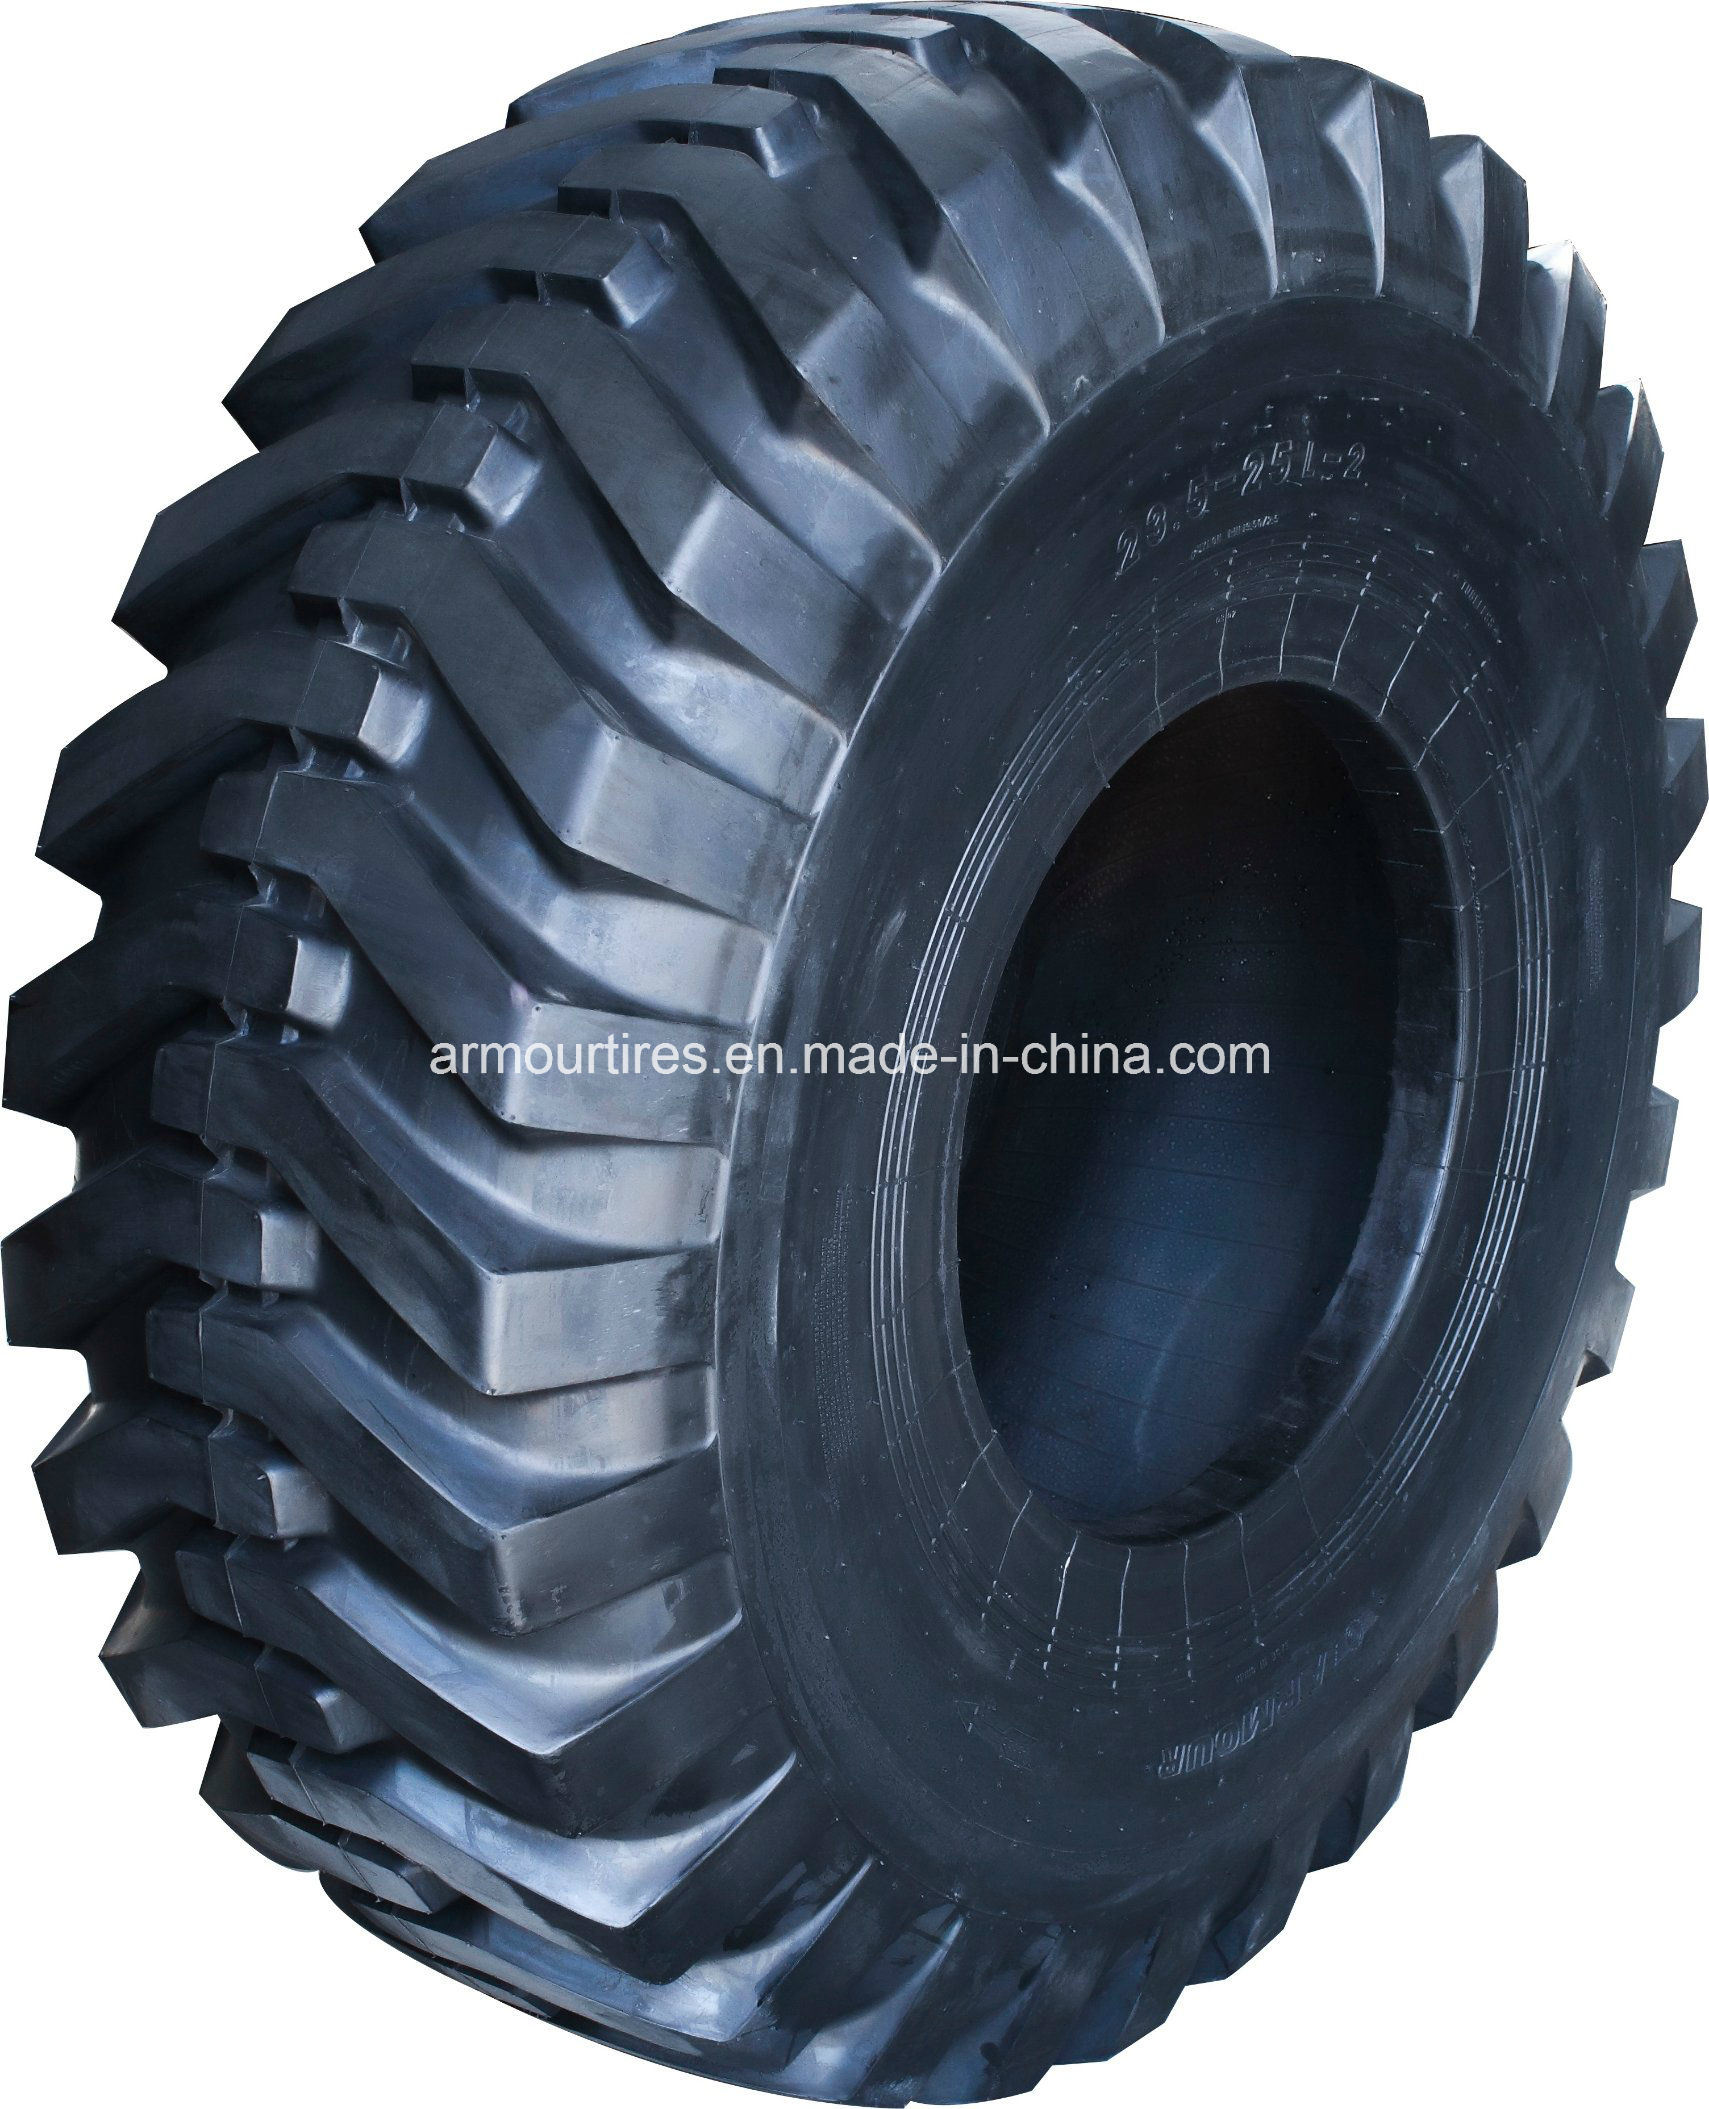 Armour 17.5-25 L2/G2 Grader OTR Tyre (for CATERPILLAR, CASE, XCMG)